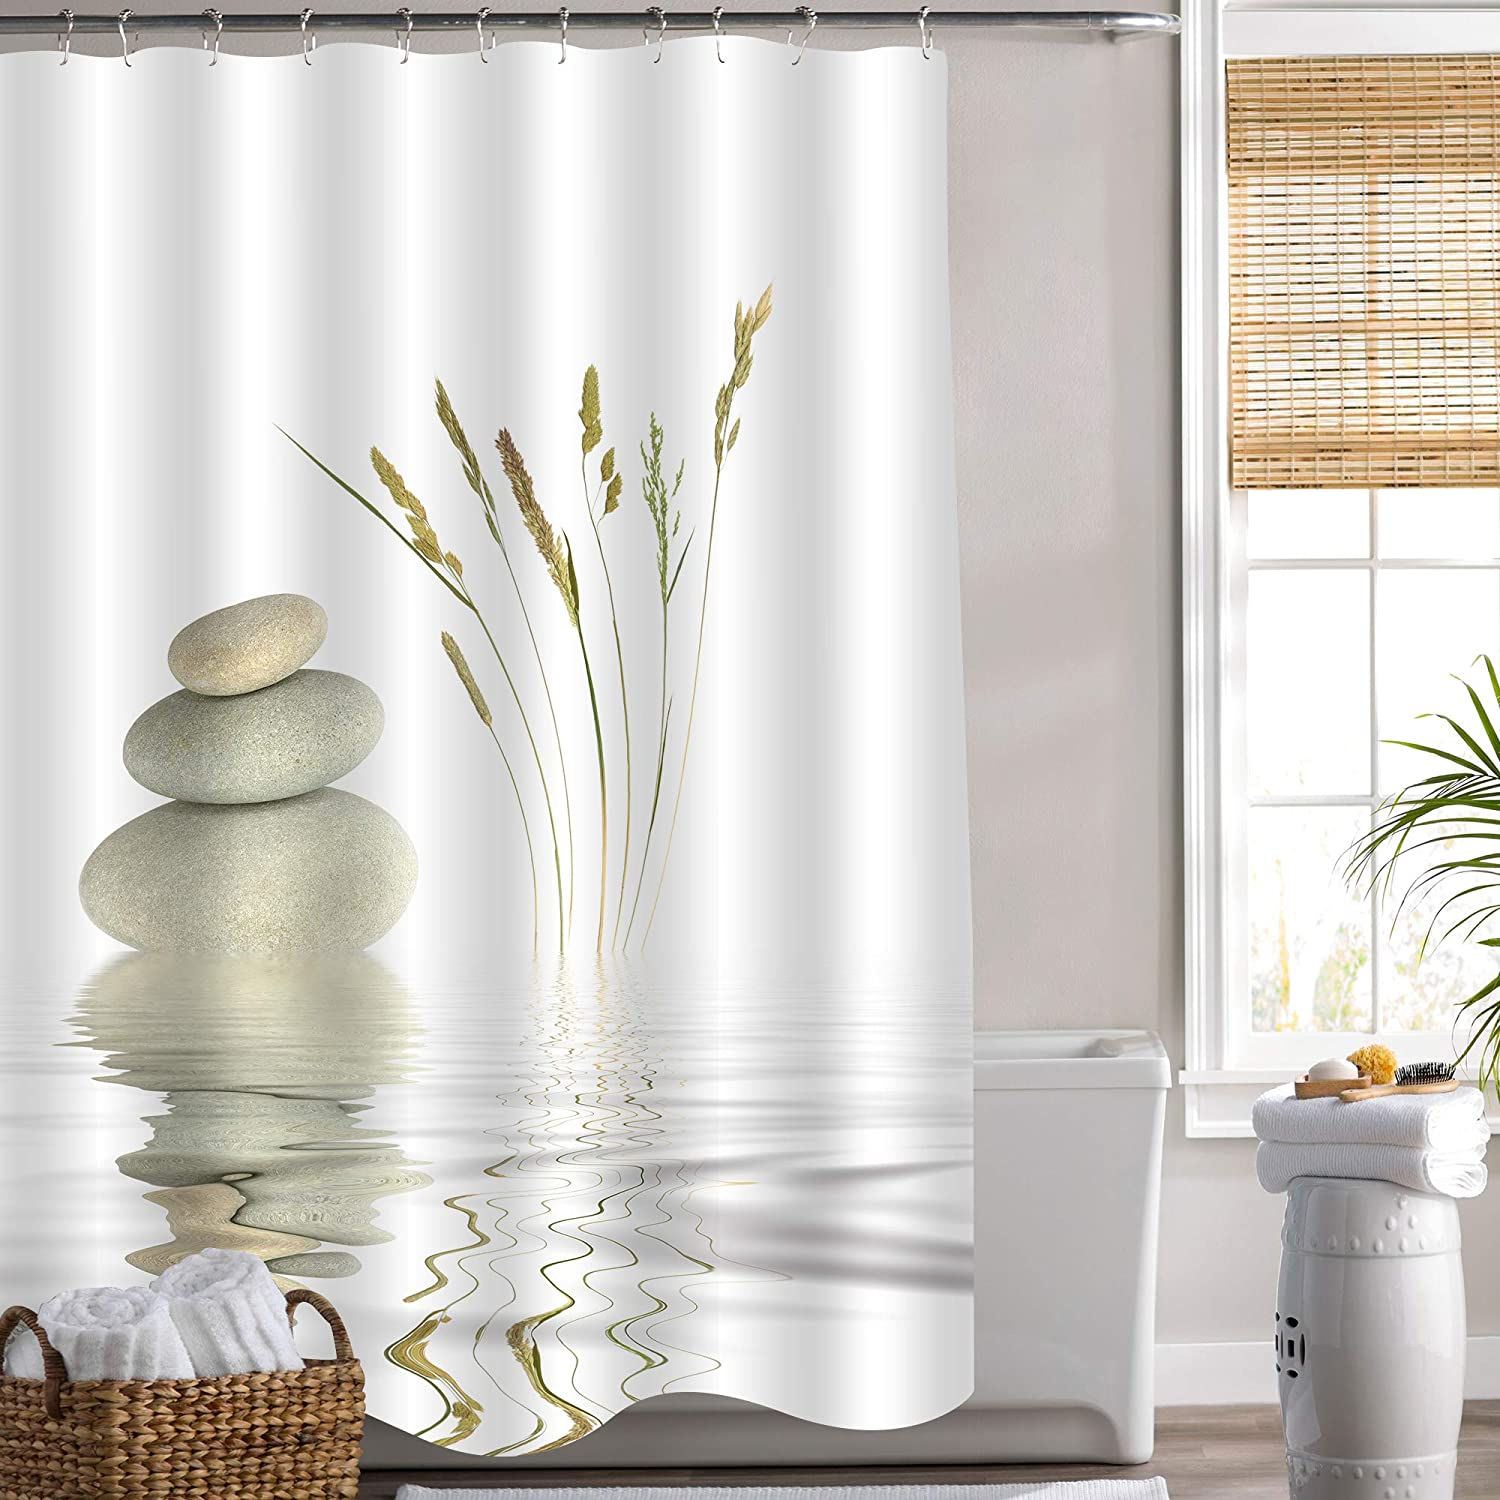 MitoVilla Zen Pebble Stone Shower Curtain for Asian Spa Bathroom Decor, Natural Grey Pebble Stones Balance with Wild Grass Over The Pond Rippled Water Bathroom Accessories, Gifts for Women, 72